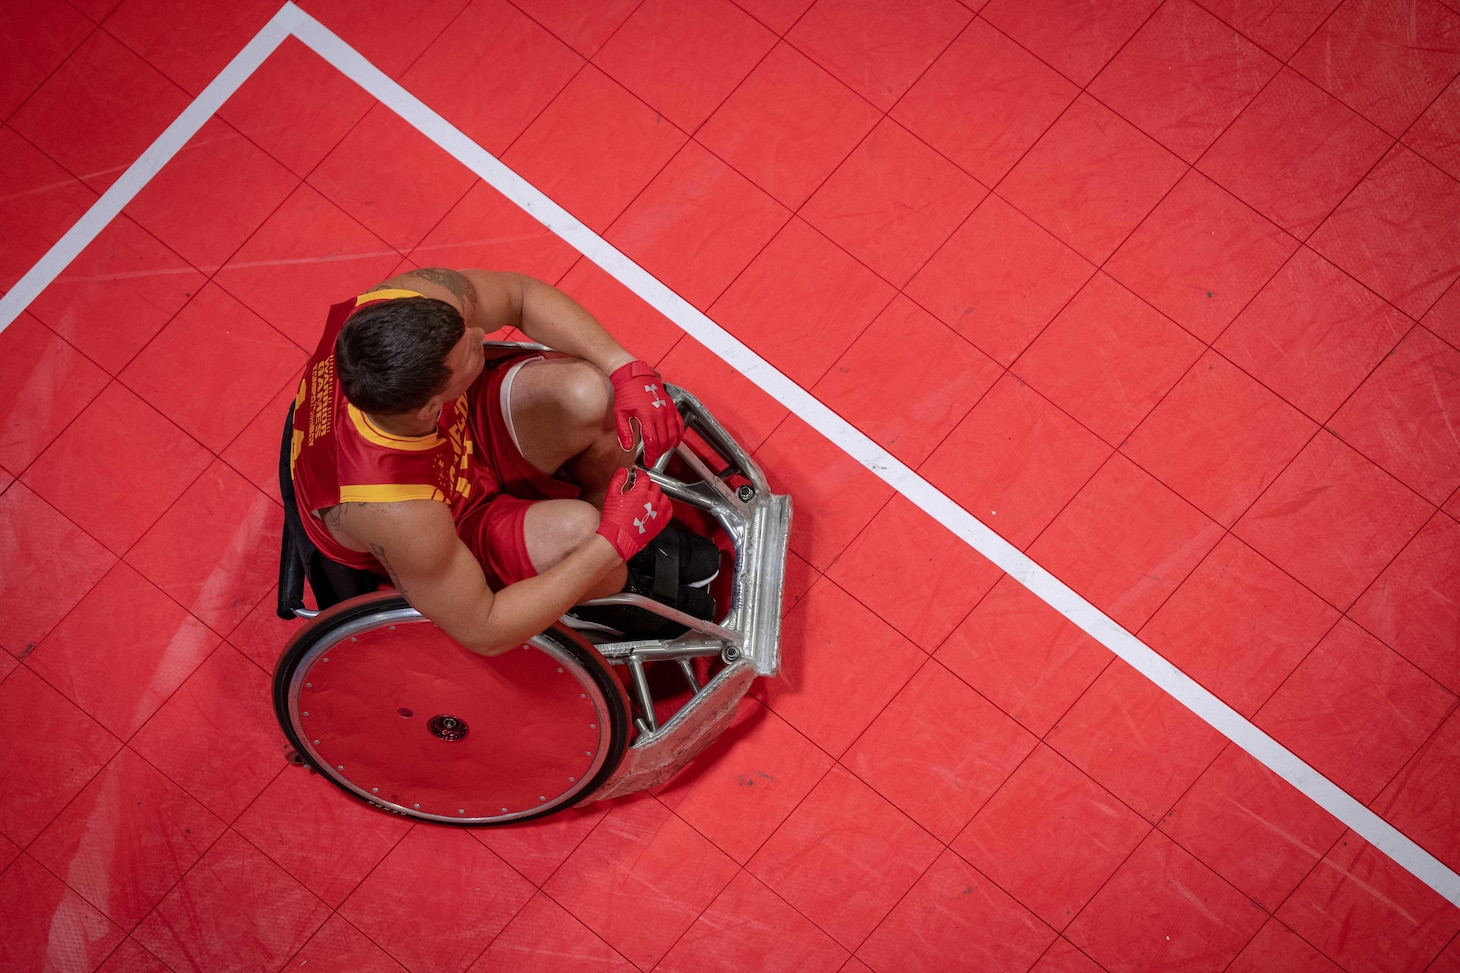 Overhead photo of a Wounded Warrior prepares for a wheelchair rugby match during the 2019 DoD Warrior Games in Tampa, Florida.